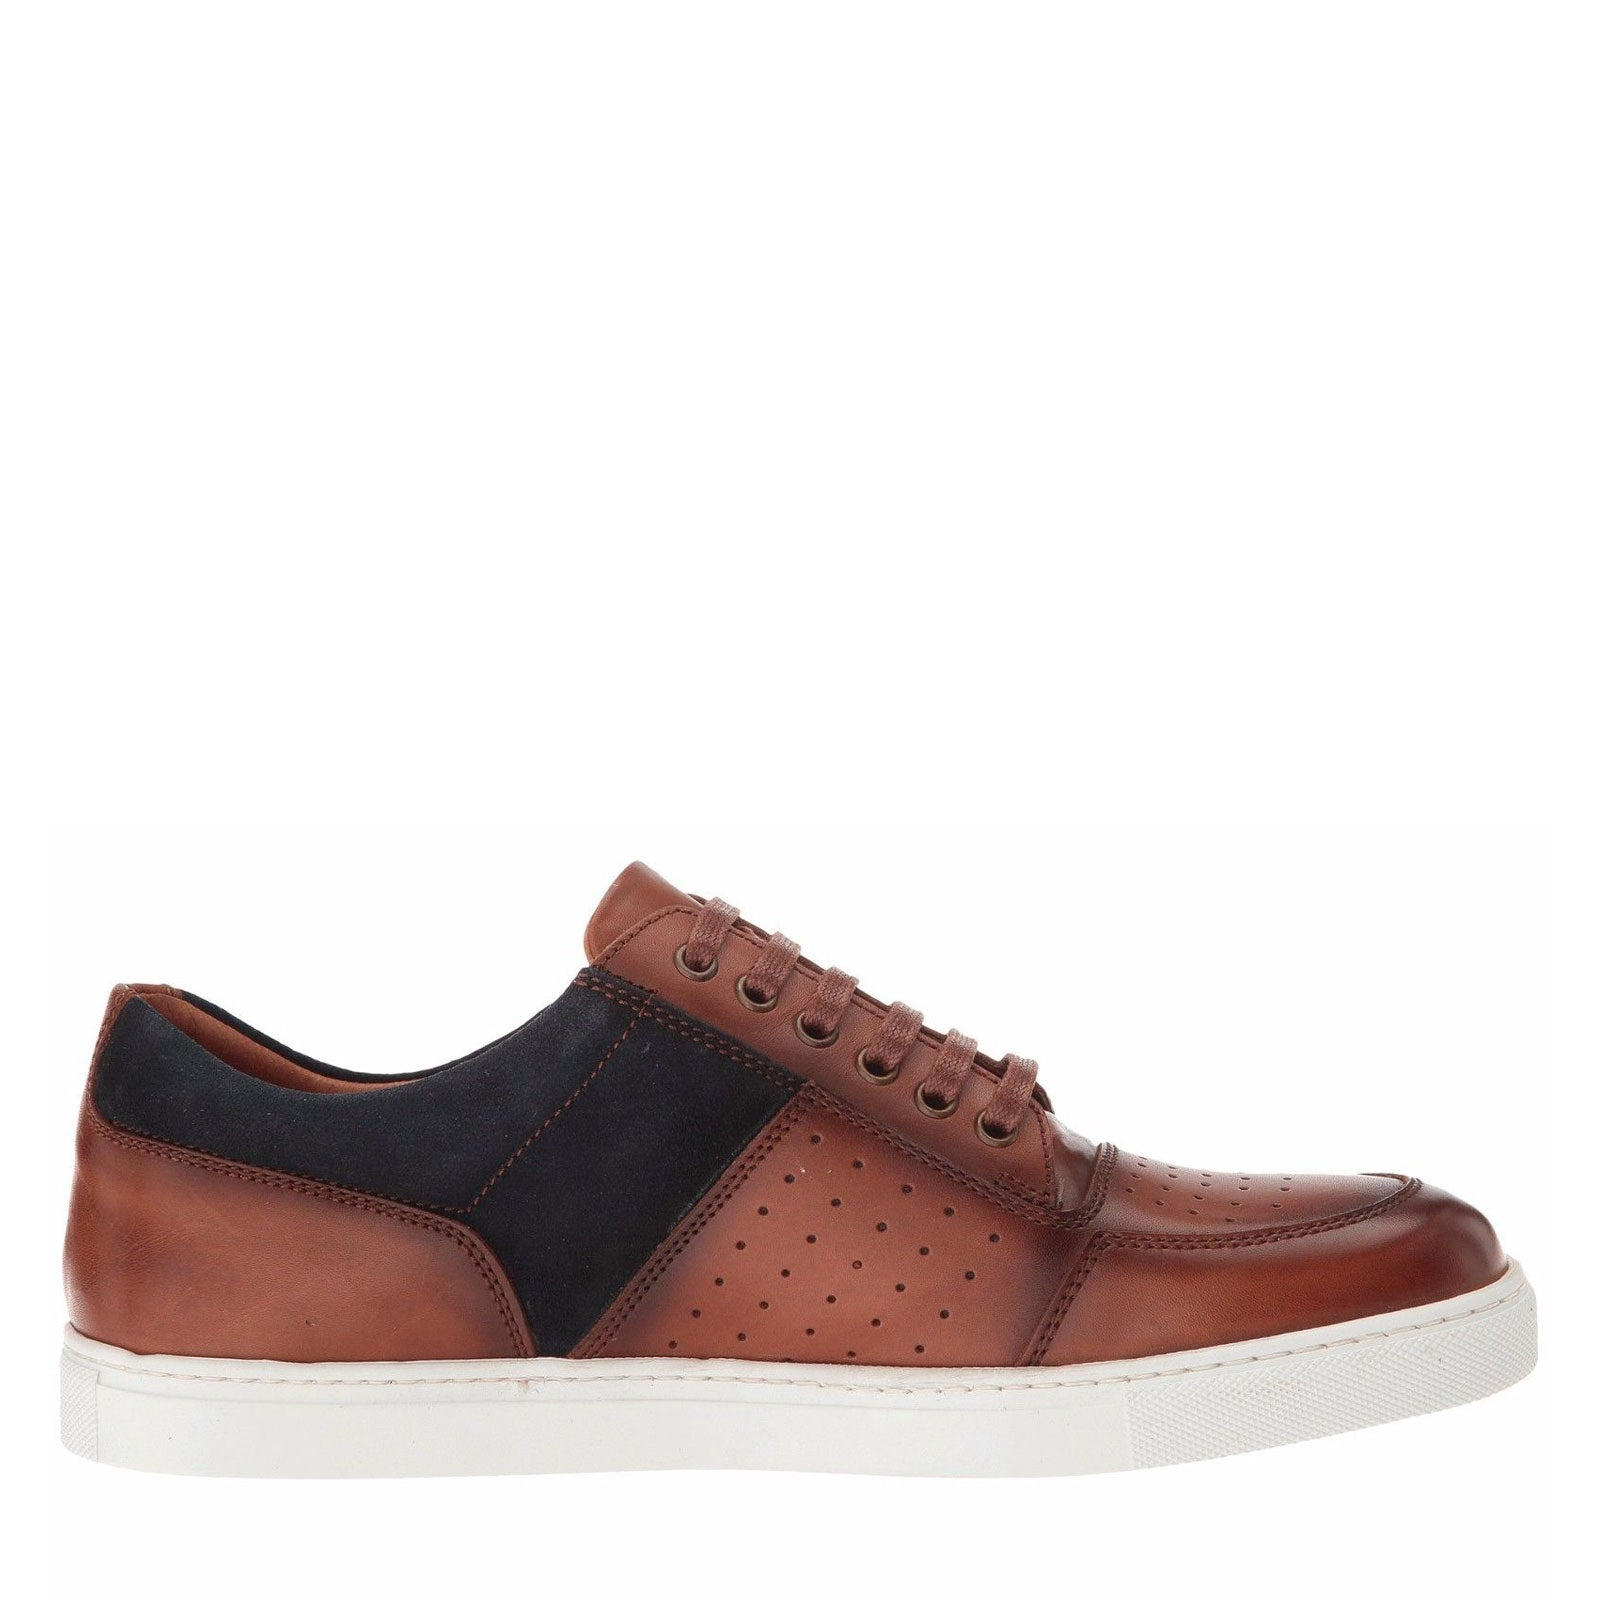 Kenneth Cole Prem-Ier -Cognac